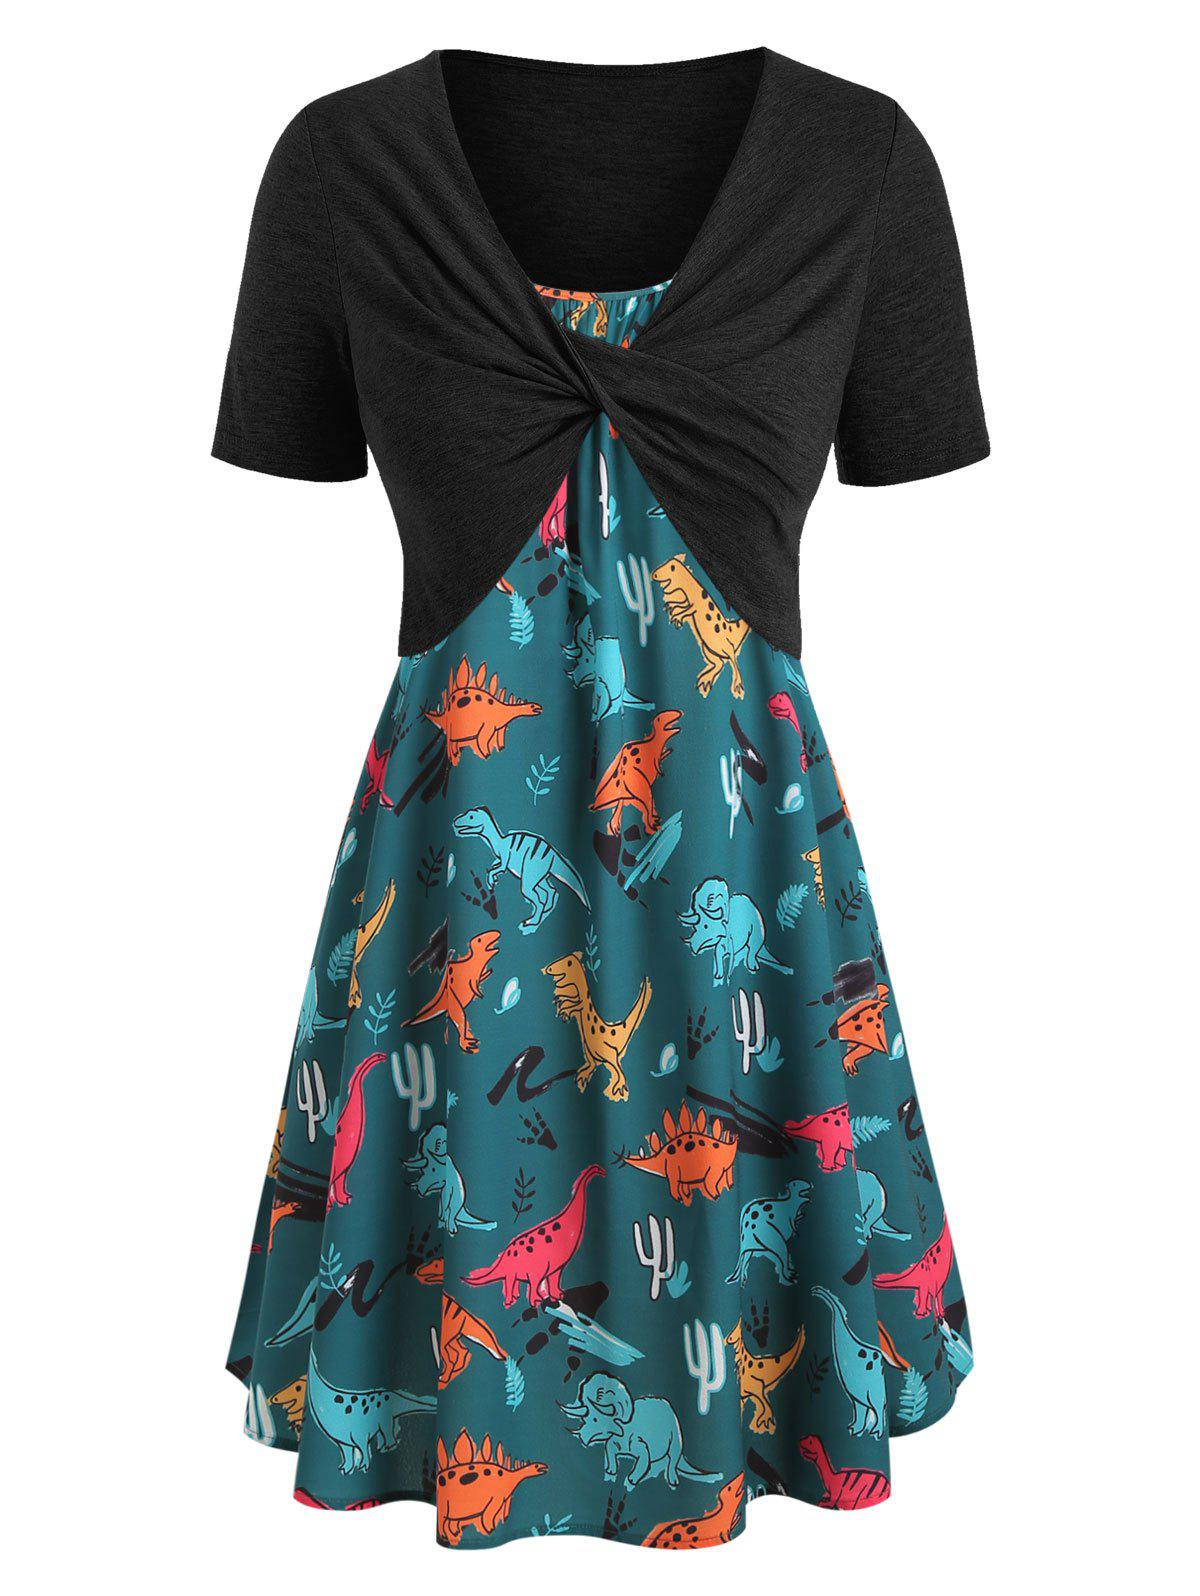 Plus Size Dinosaur Print Ruffled Dress With Twist Top - DARK GREEN L